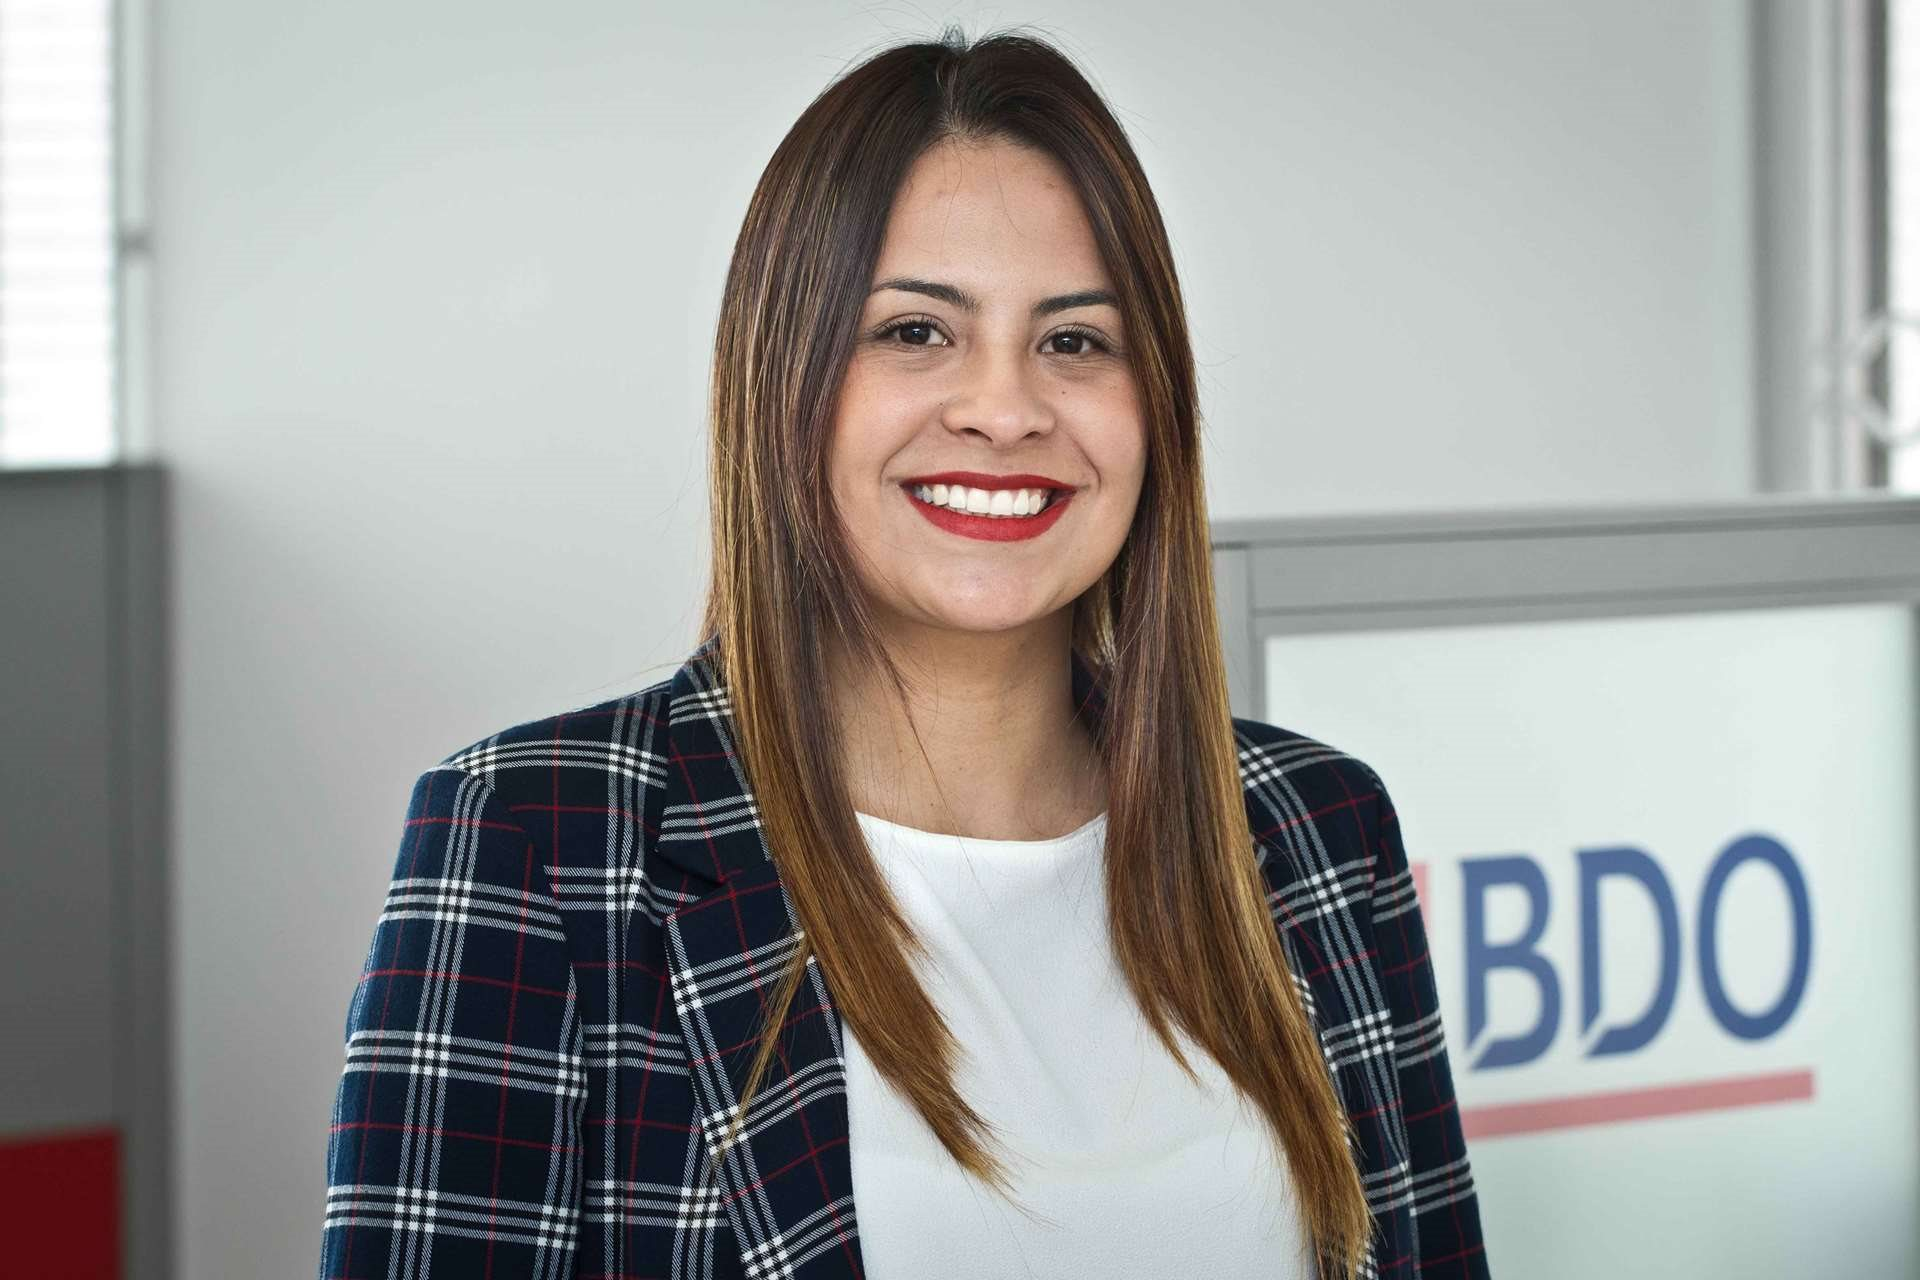 Ivonne Maritza Acosta Plazas, Senior Manager Tax